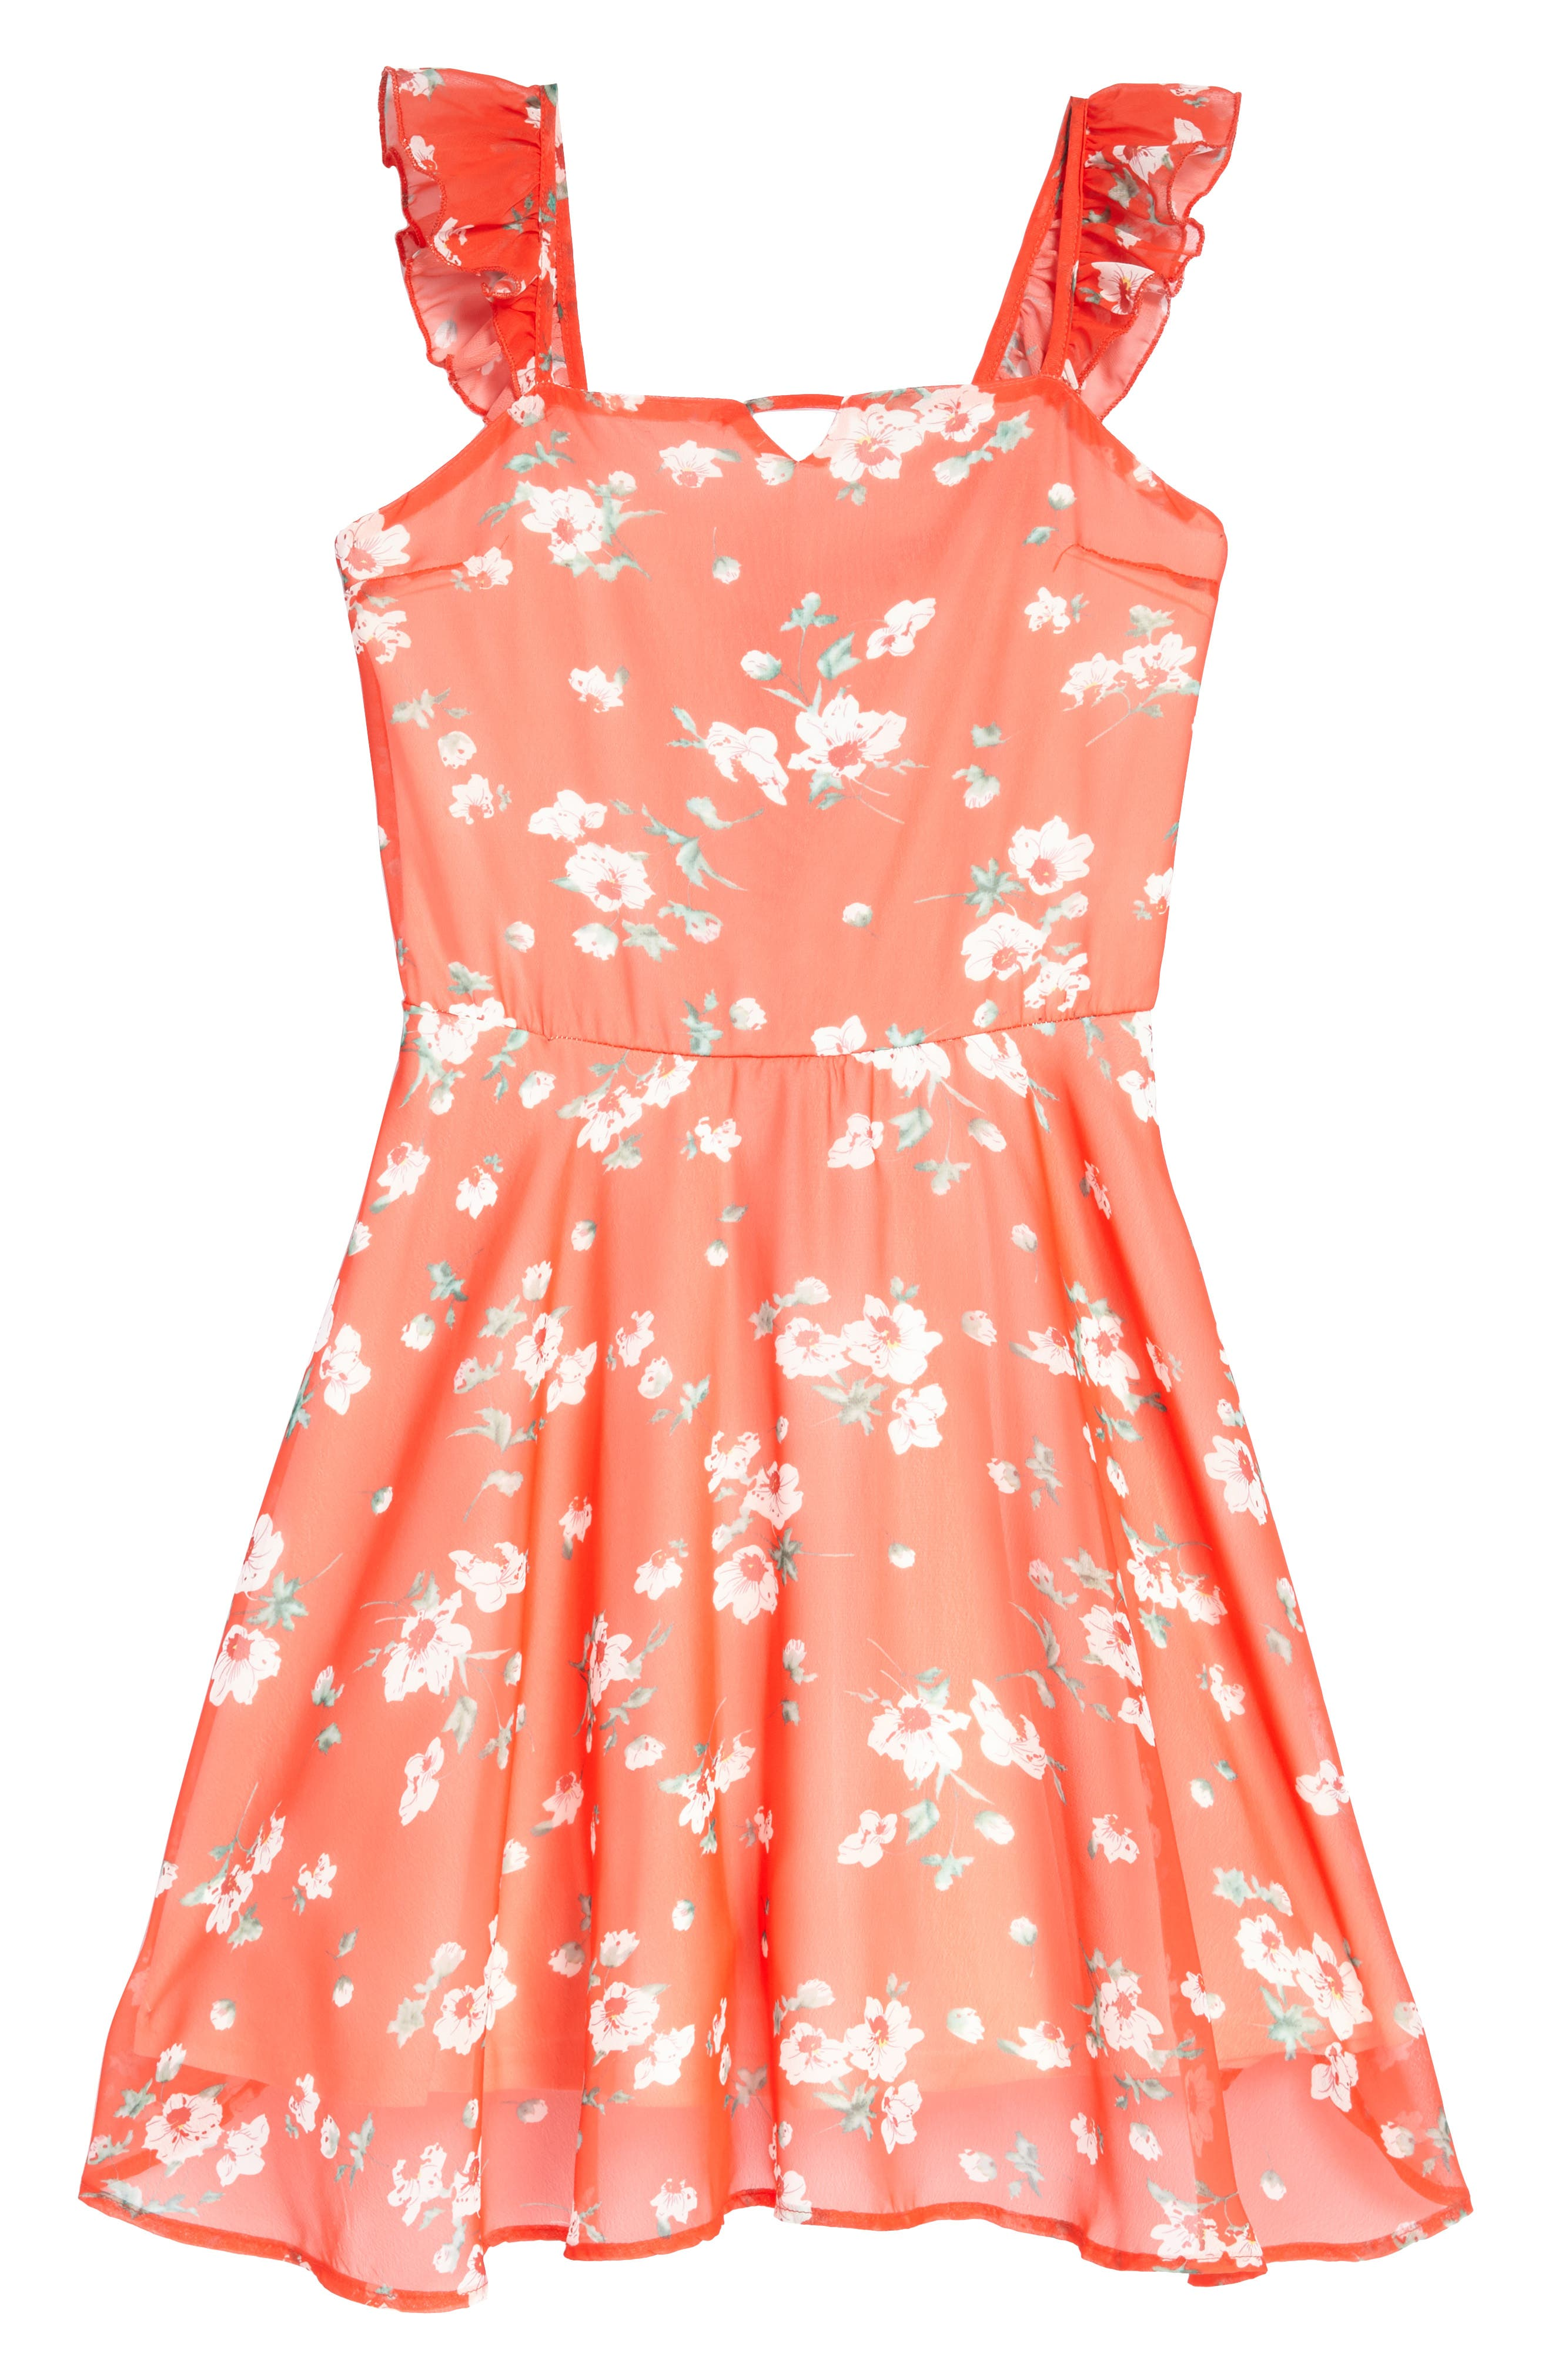 Main Image - Miss Behave Floral Ruffle Dress (Big Girls)